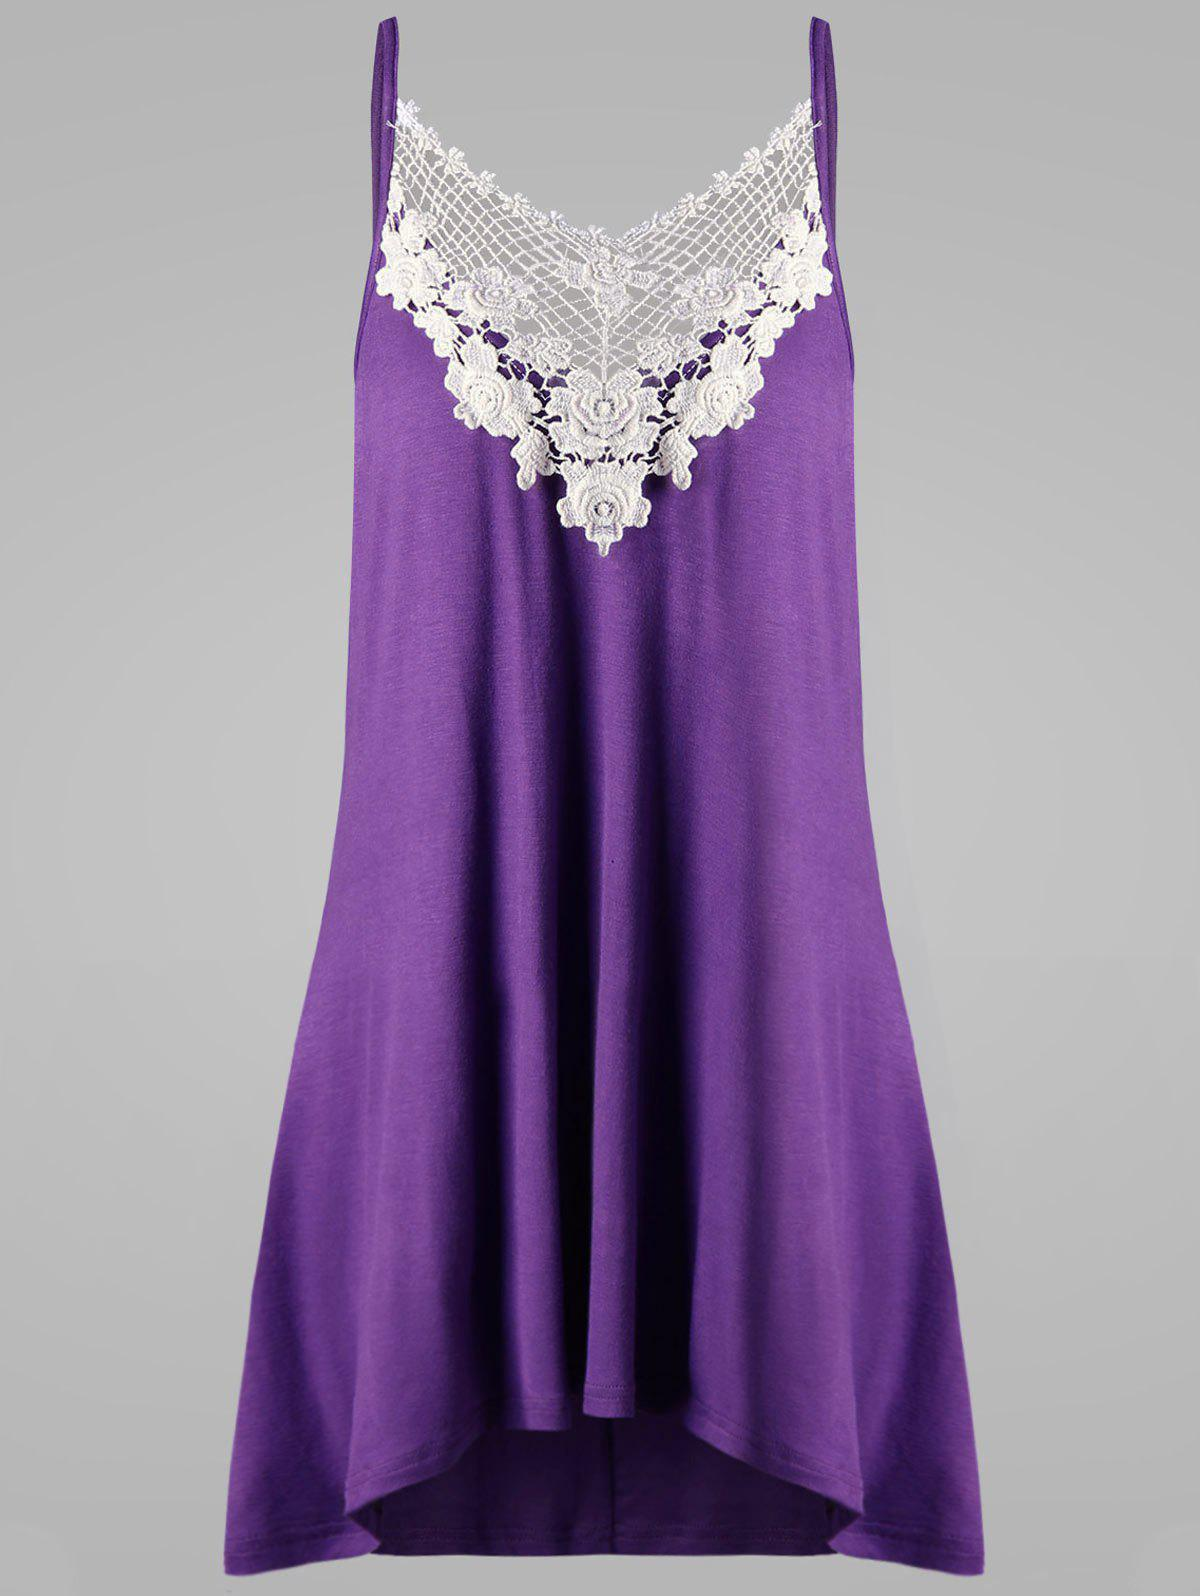 Plus Size Crochet Panel Openwork Tank TopWOMEN<br><br>Size: 4XL; Color: PURPLE; Material: Rayon,Spandex; Shirt Length: Regular; Sleeve Length: Sleeveless; Collar: Spaghetti Strap; Style: Casual; Season: Summer; Pattern Type: Floral; Weight: 0.2200kg; Package Contents: 1 x Tank Top;